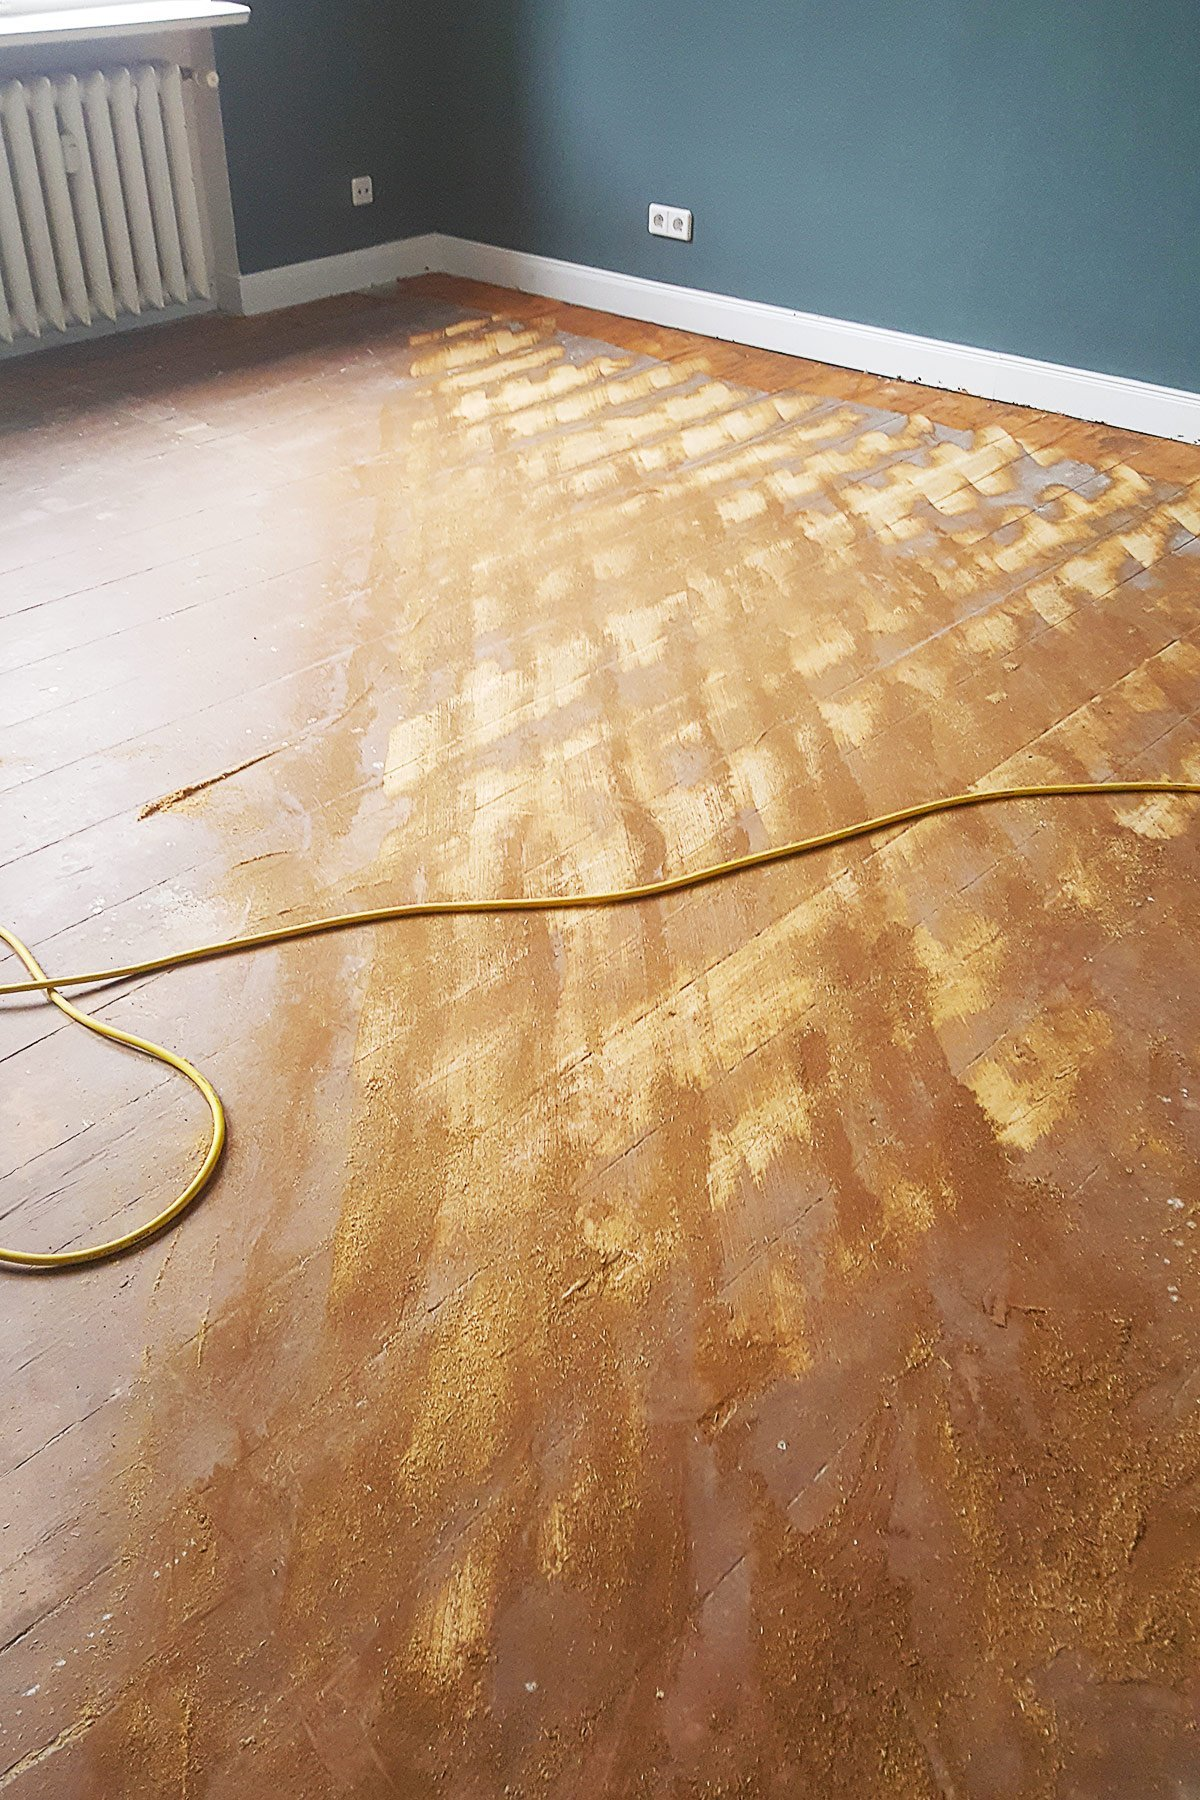 5 Floor Sanding Mistakes And How To Avoid Them - Sand Diagonally | Little House On The Corner